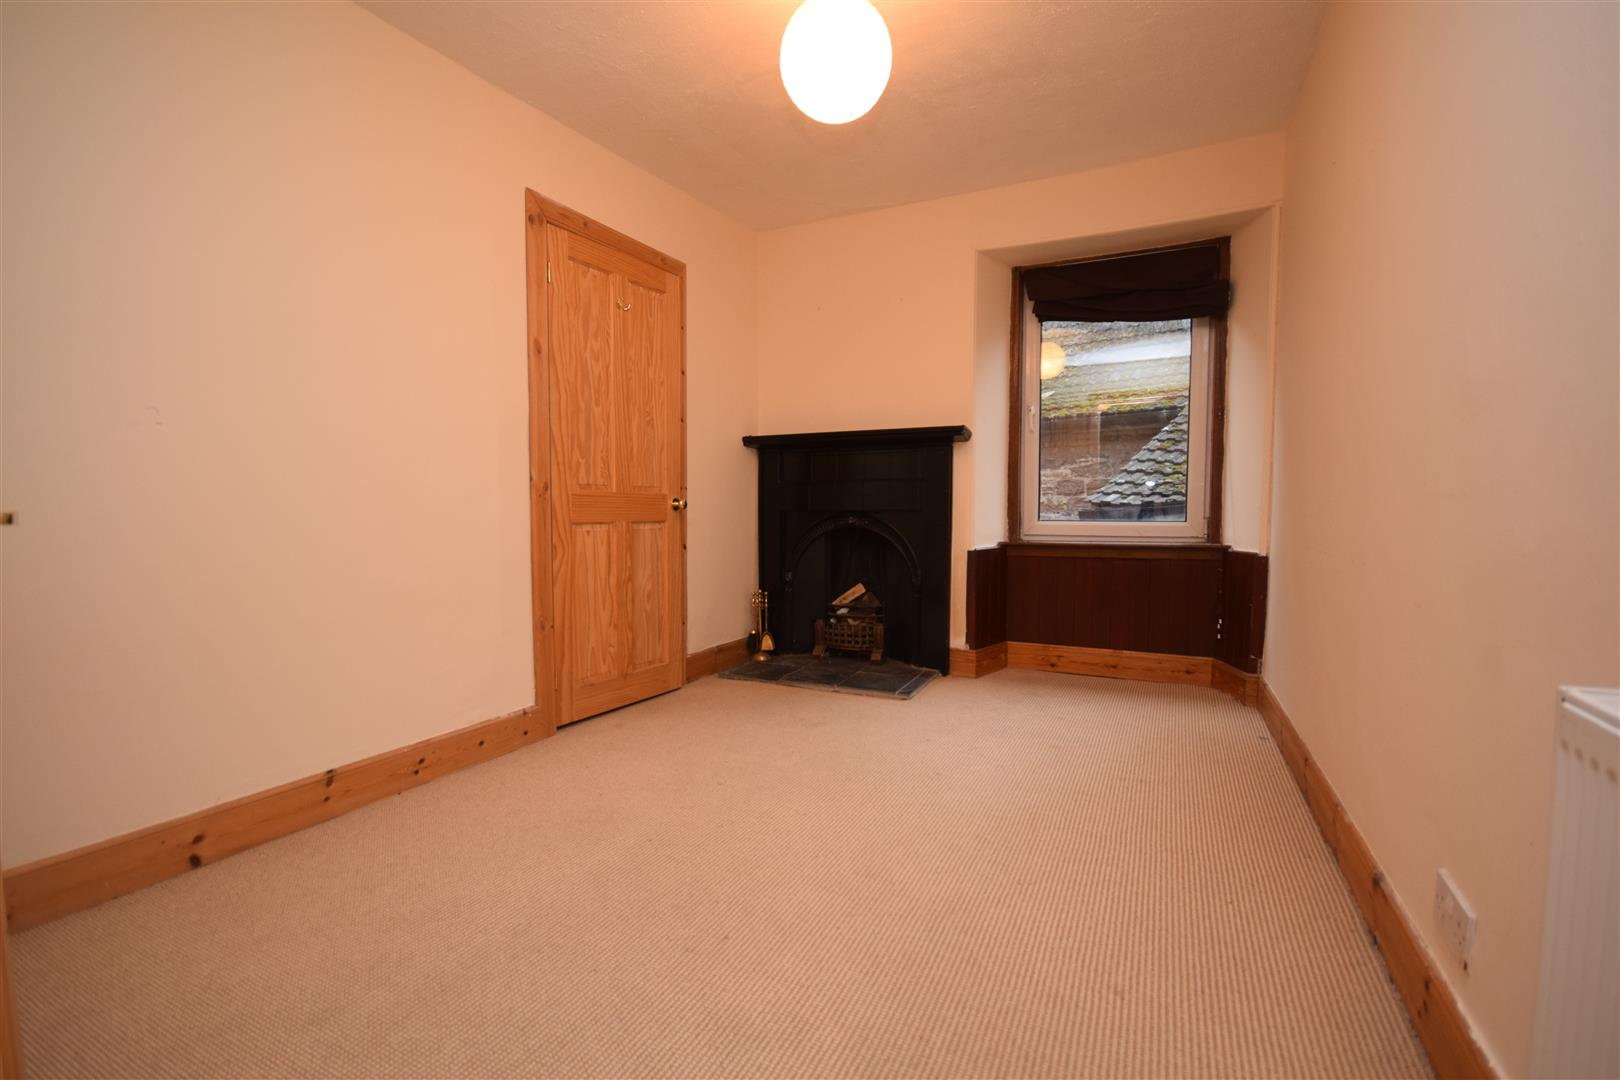 2, Academy Road, Crieff, Perthshire, PH7 4AT, UK